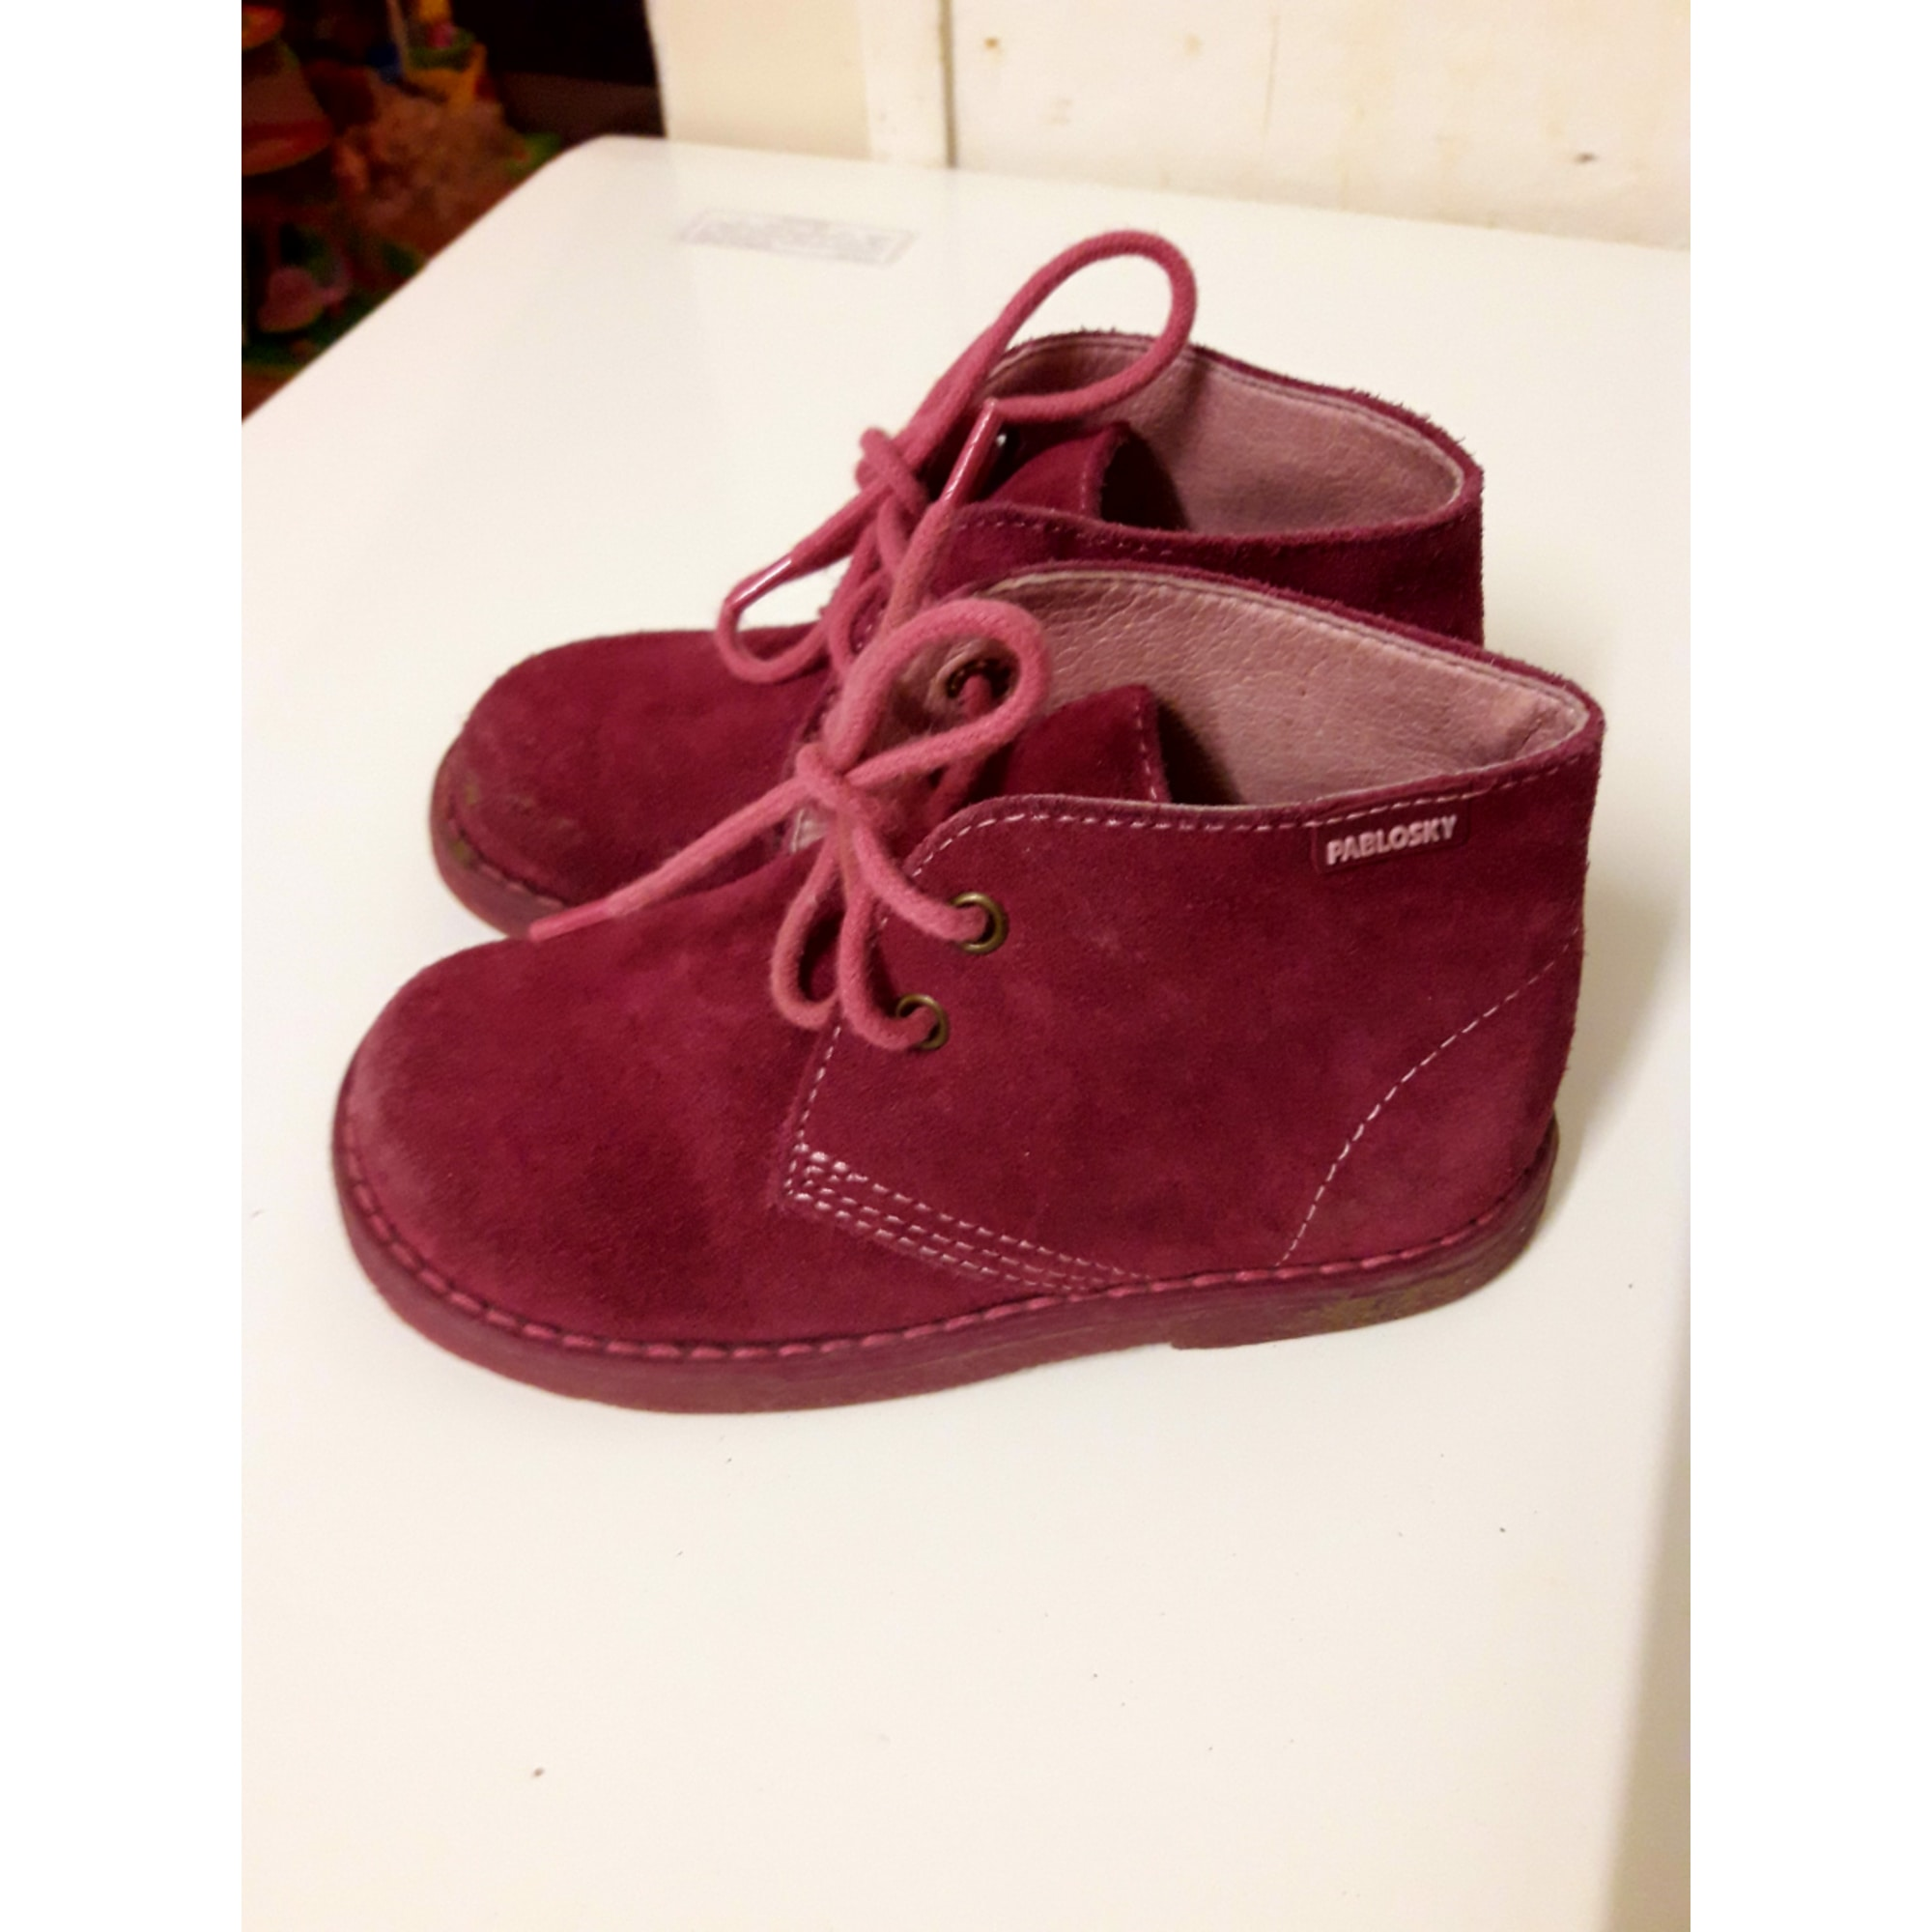 c33575bf88791 Chaussures à lacets PABLOSKY 25 rose - 6606998